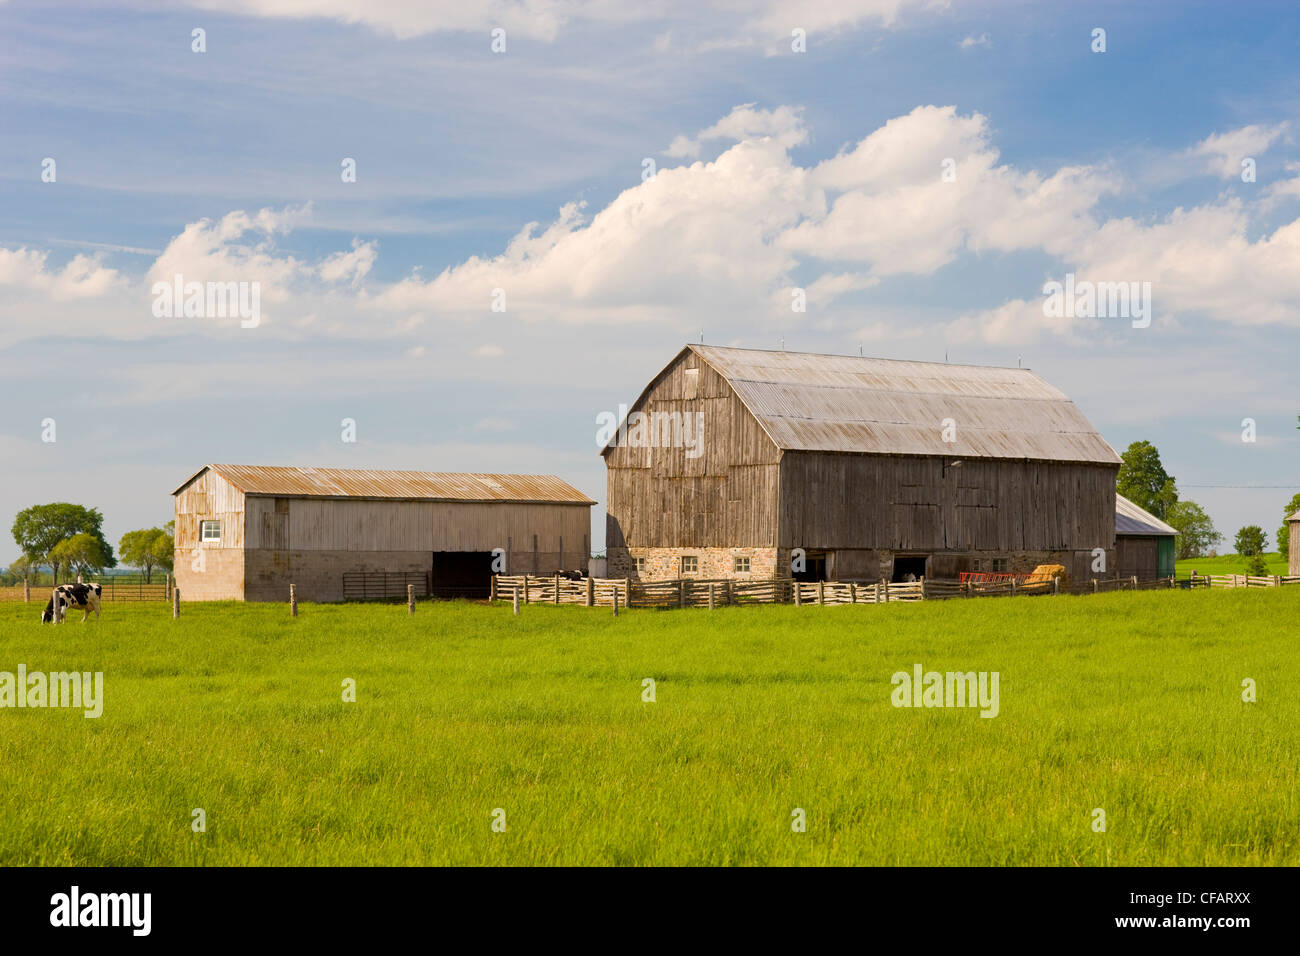 Cows in a barn yard in Scugog, Ontario, Canada. - Stock Image